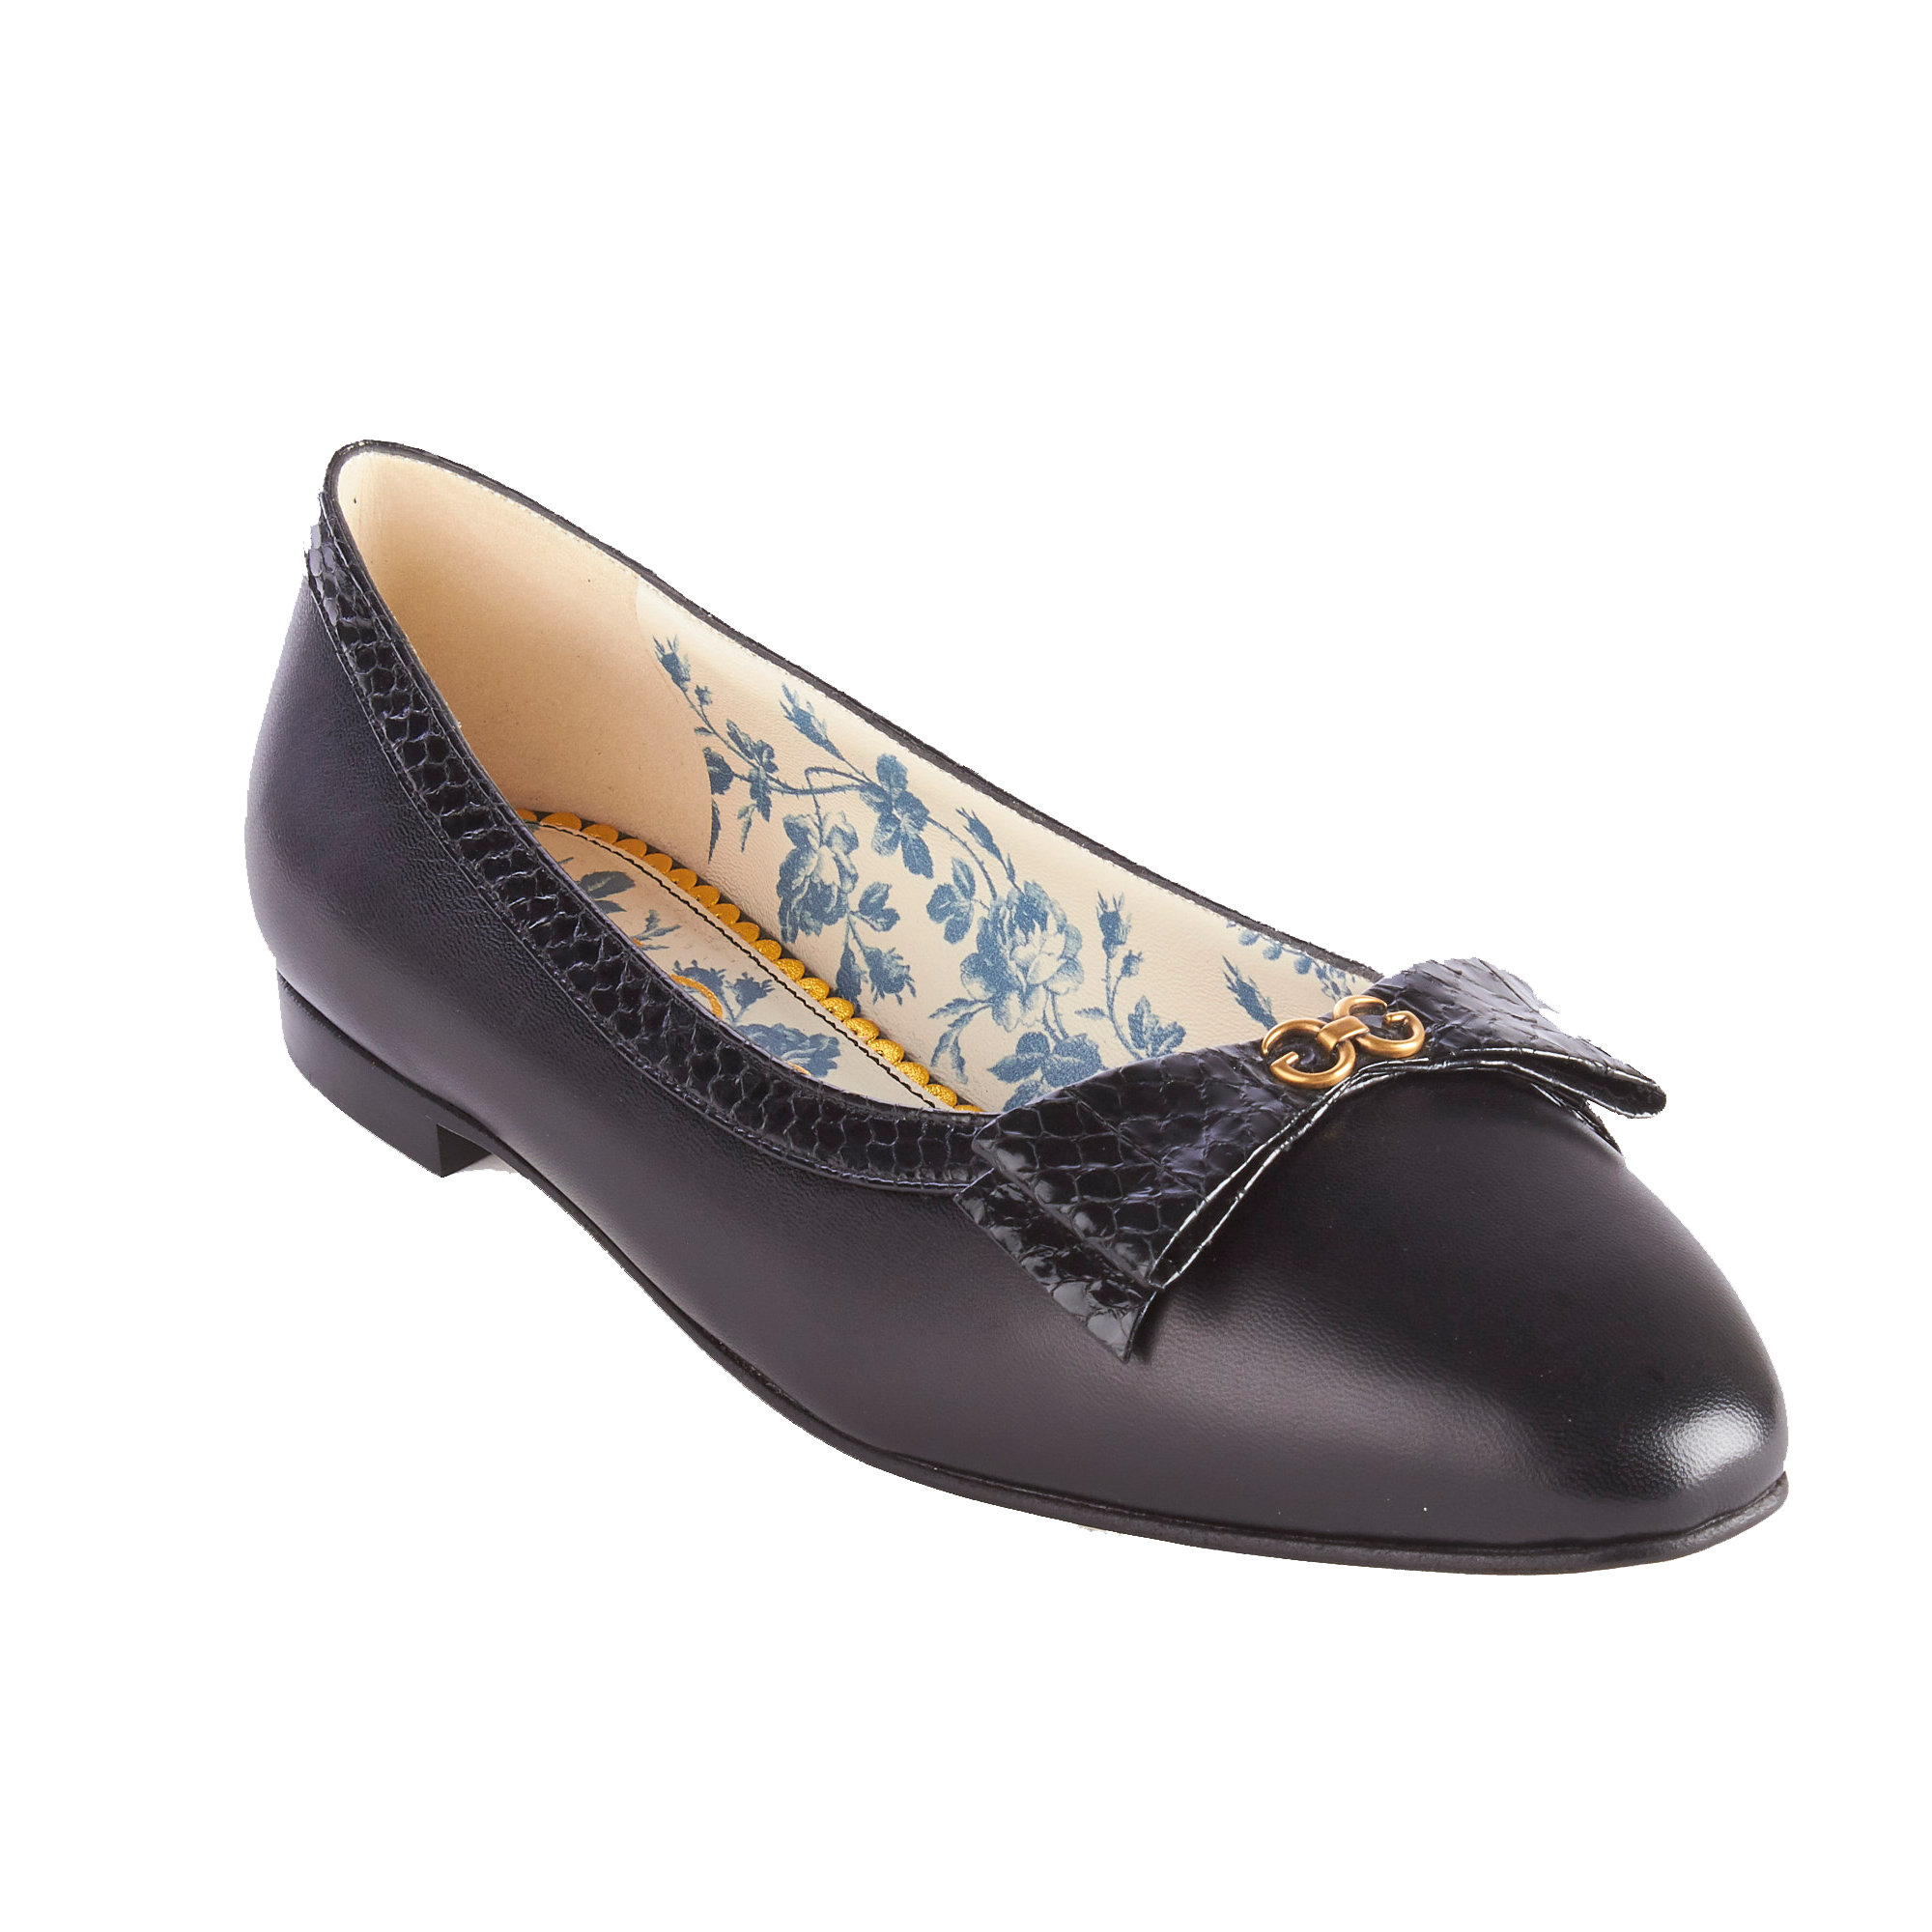 "Black snakeskin bow with GG mirrored detail-Blue rosebuds and Gucci print leather lining-Rounded point toe.5"" height-Made in Italy"